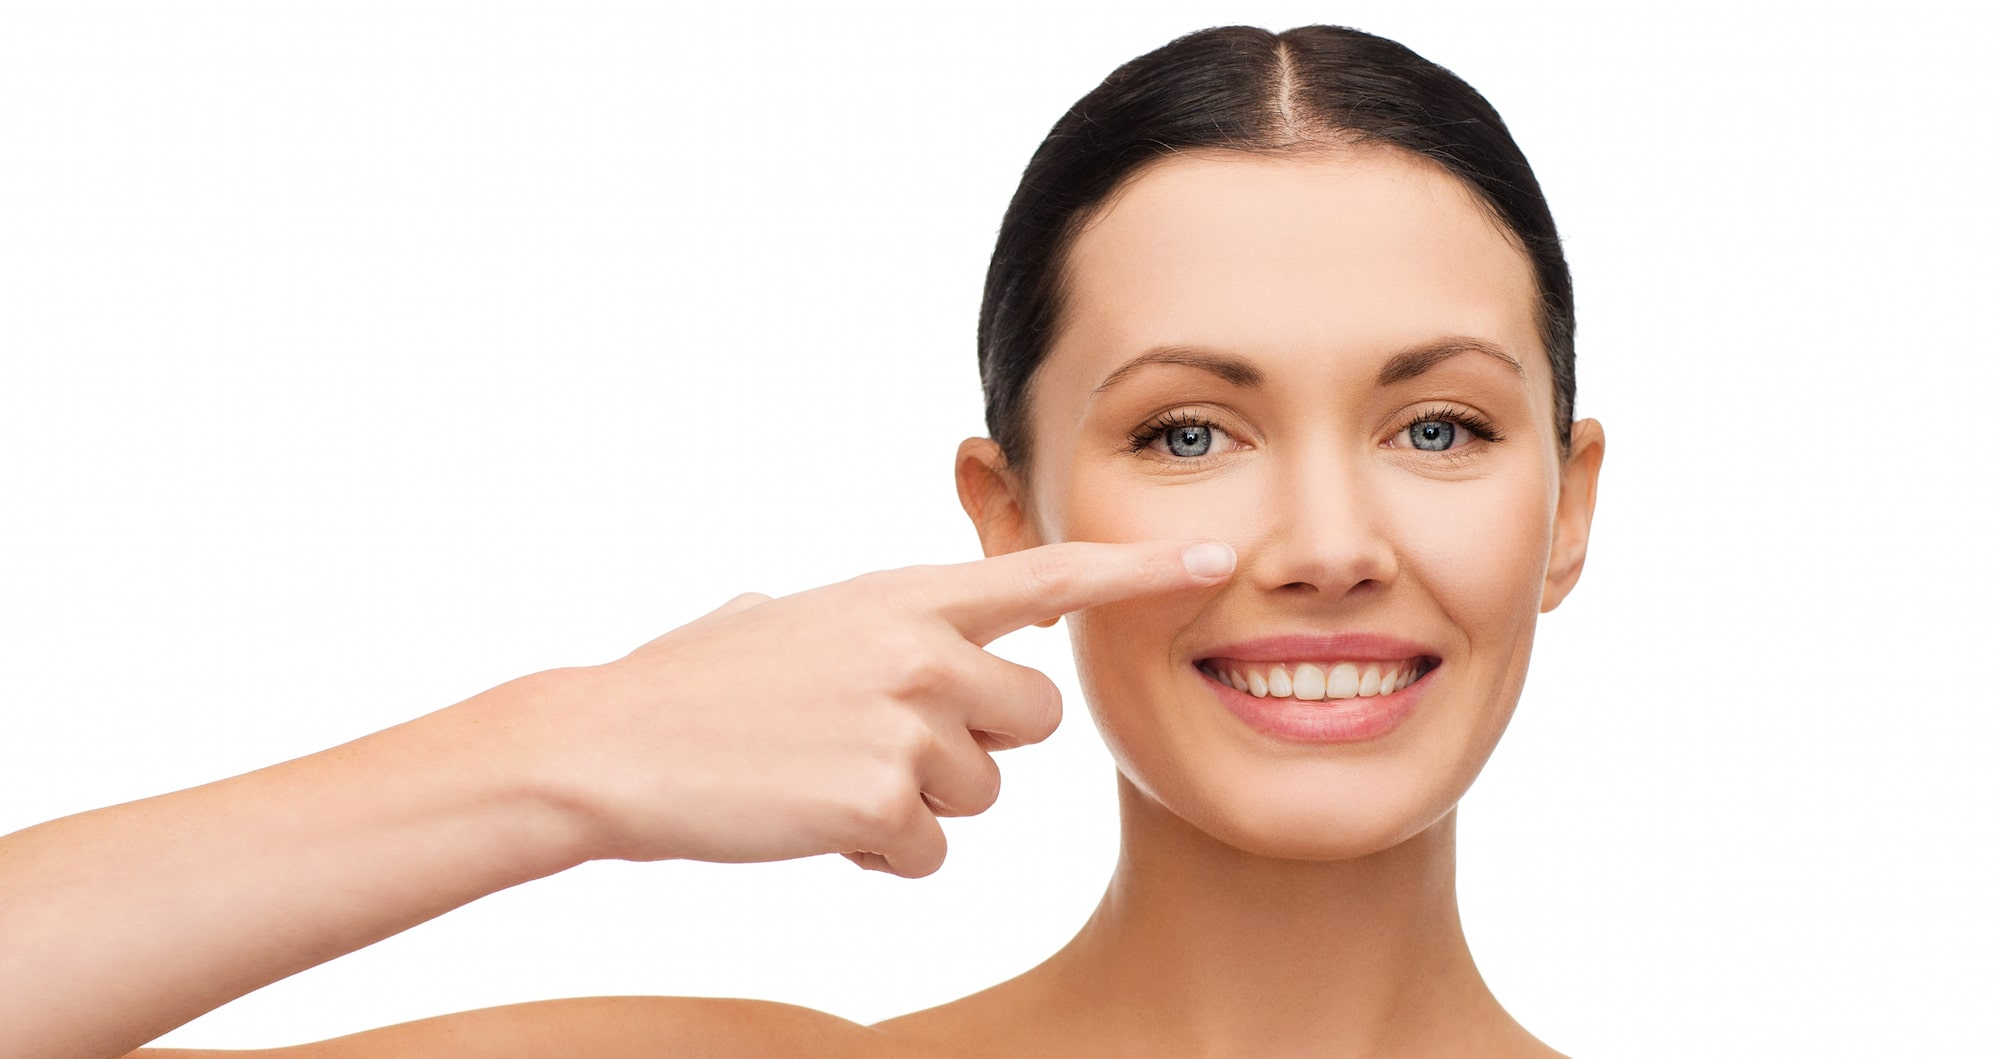 Items you need to know before getting rhinoplasty surgery